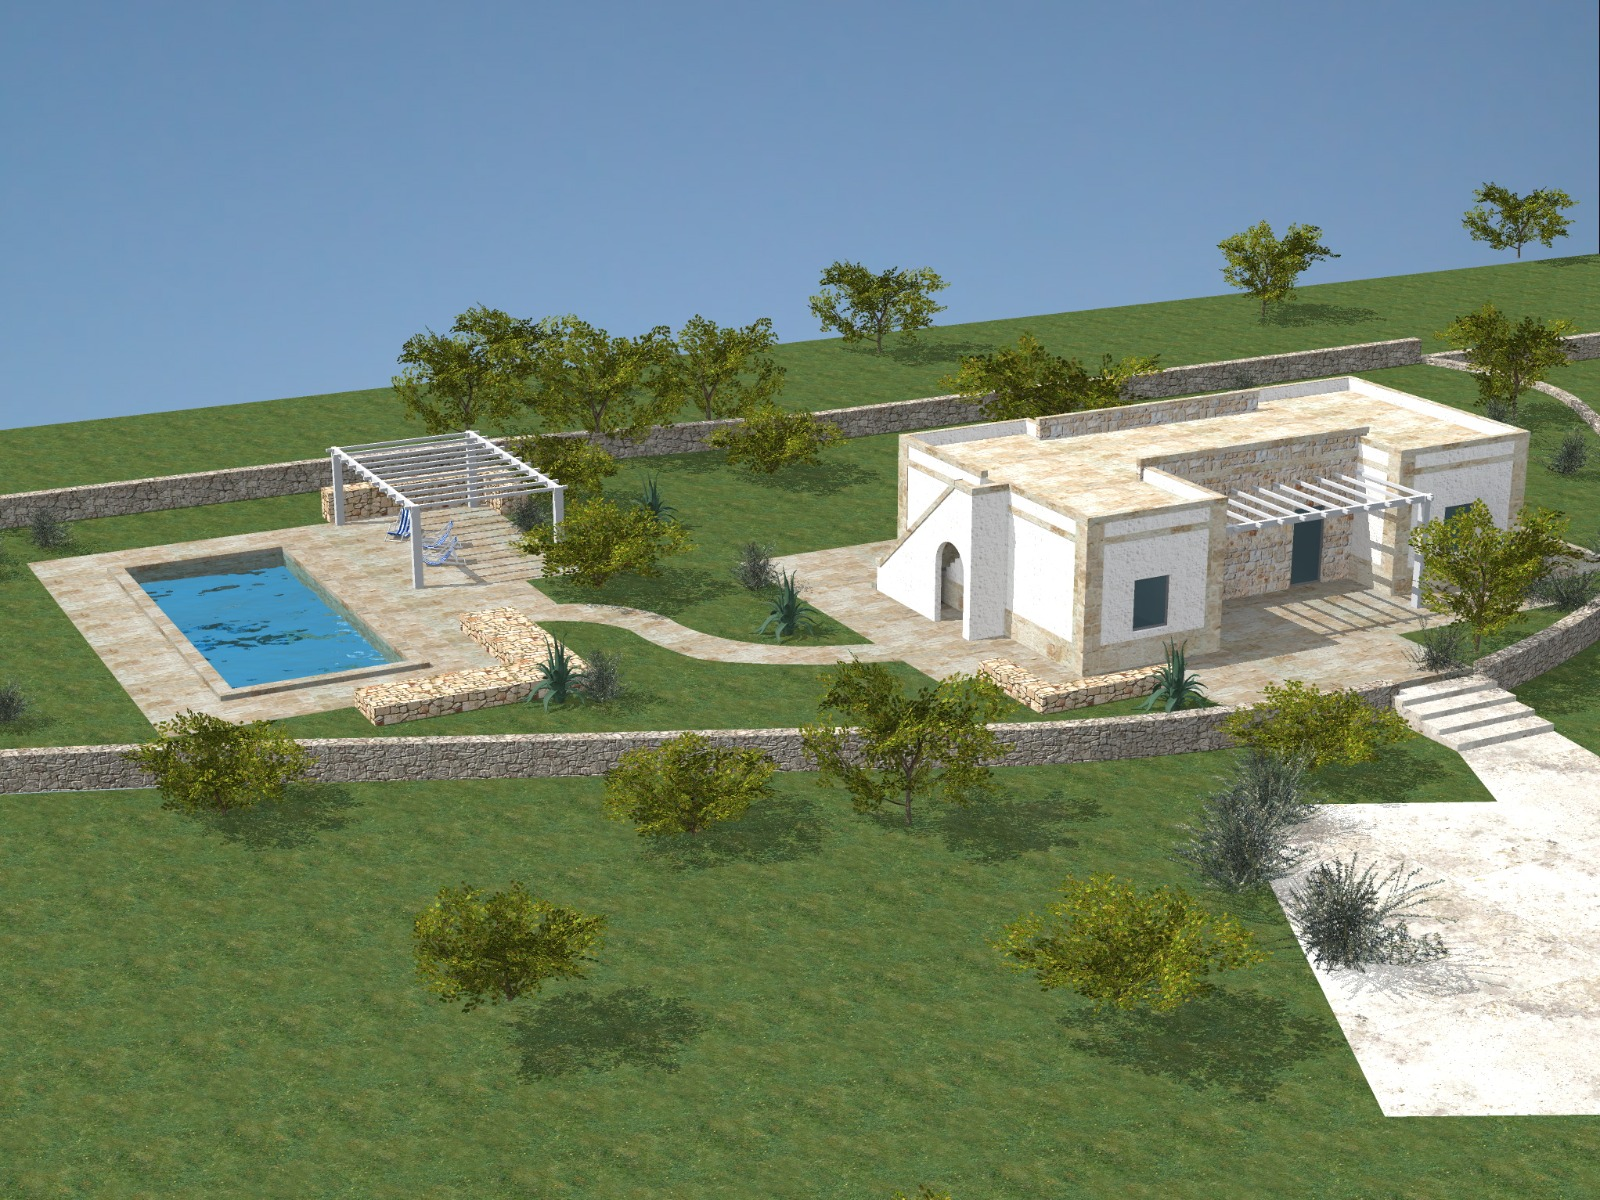 Land with approved Villa with Pool Project in Ostuni